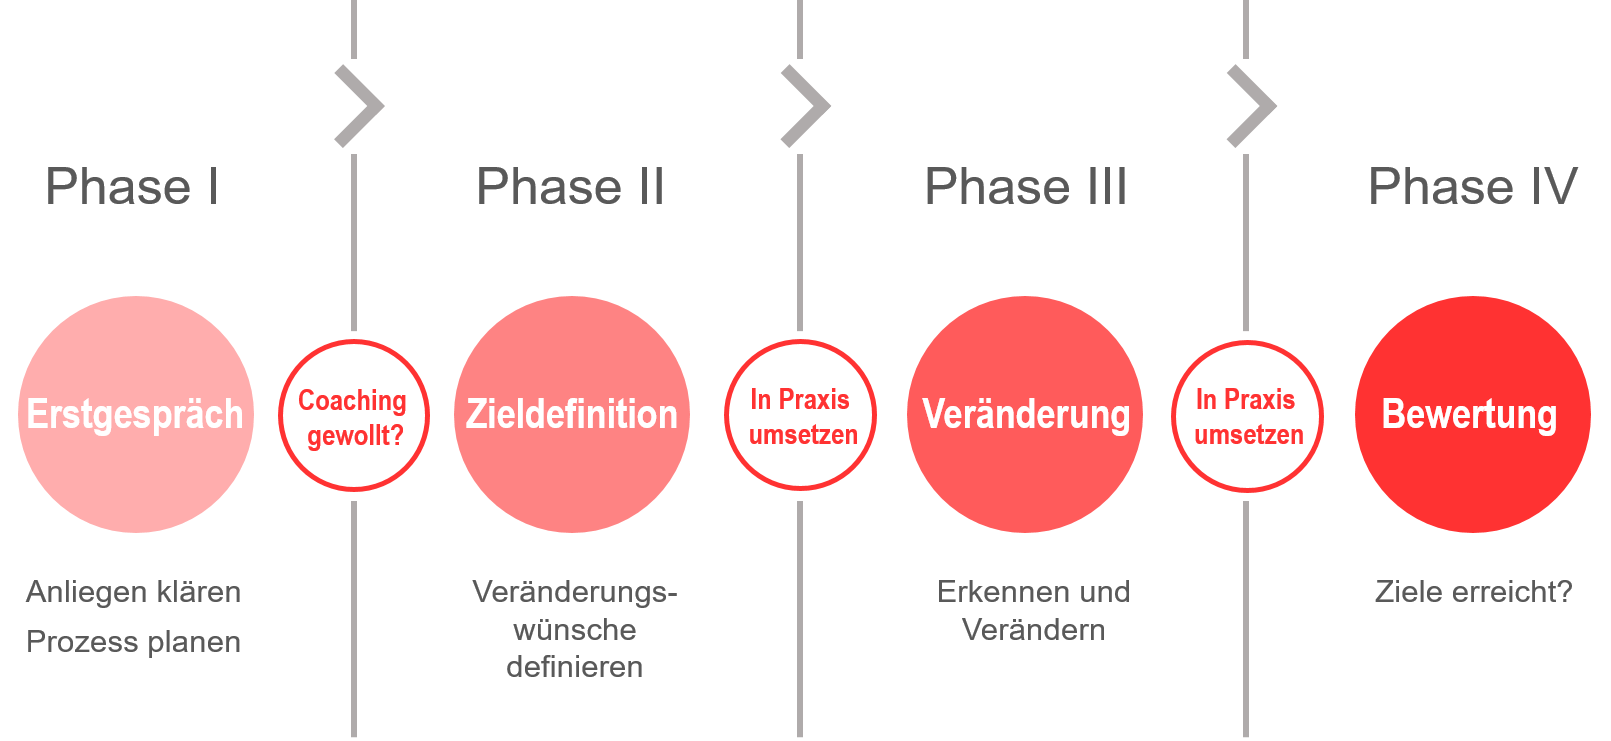 Wie funktioniert Online Coaching?